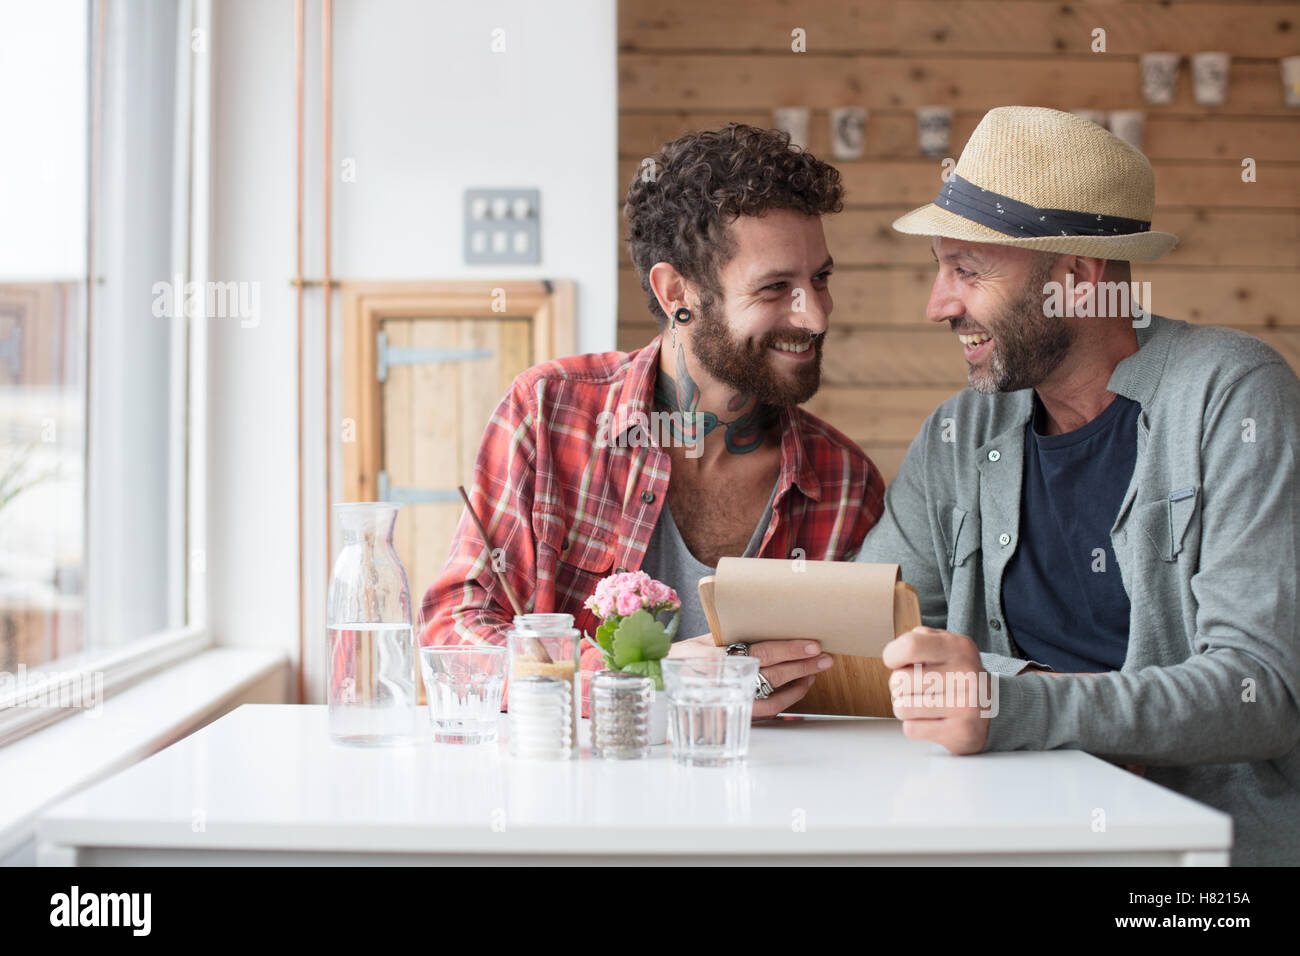 Couple Gay sat menu Visualisation in cafe Photo Stock